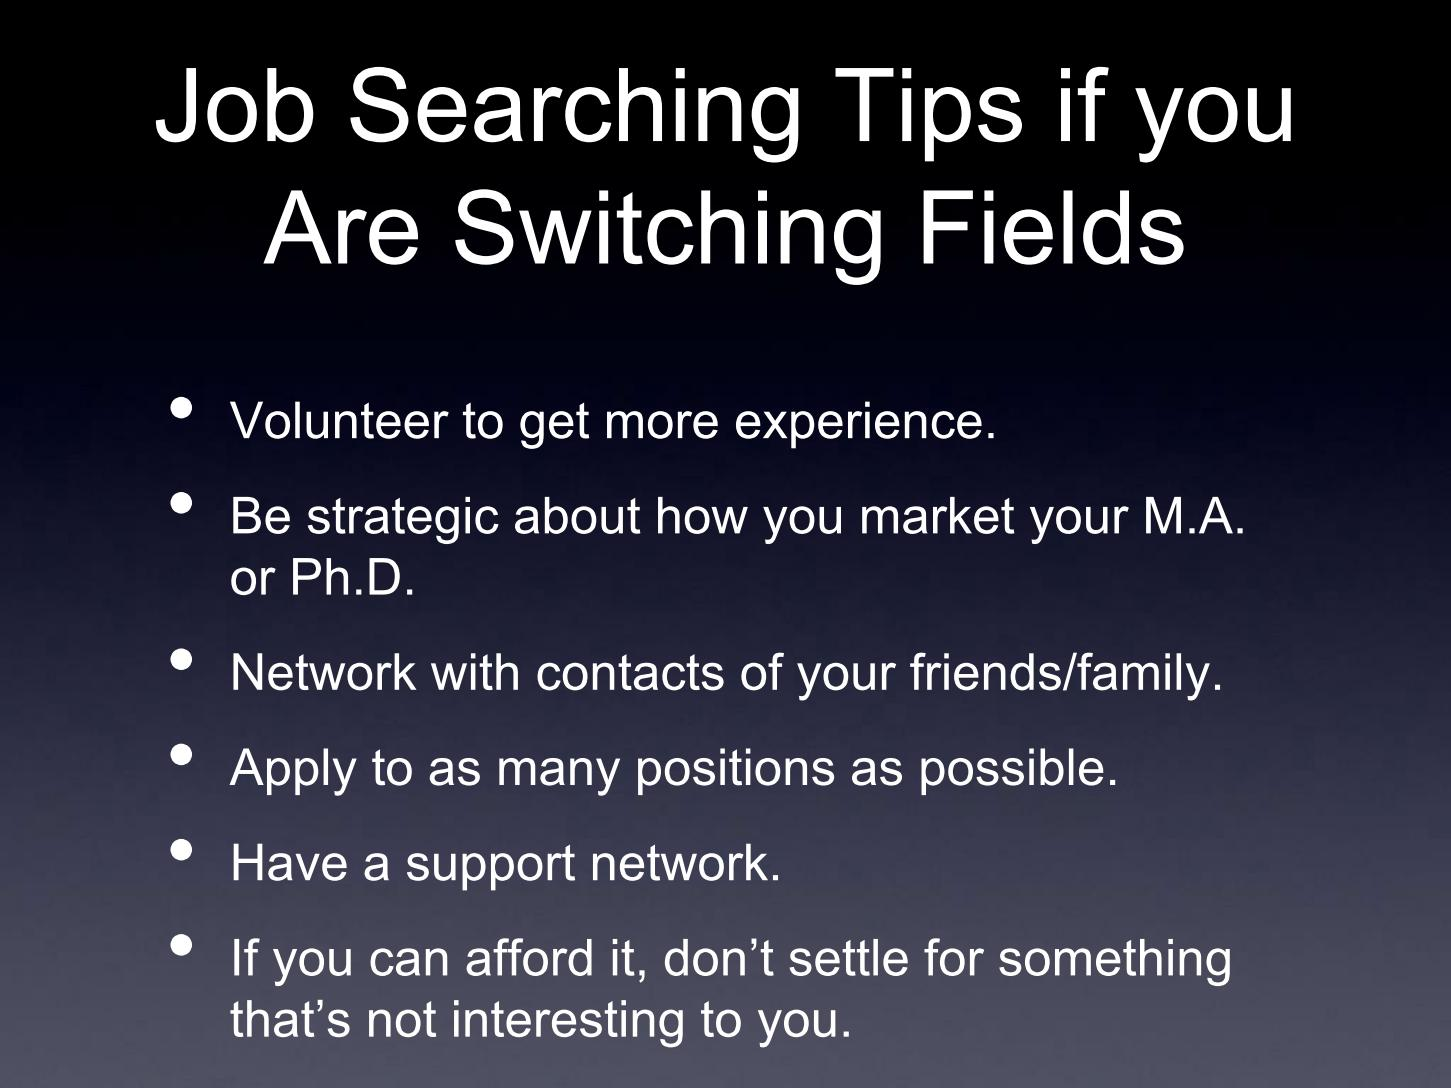 Job Searching Tips if you Are Switching Fields